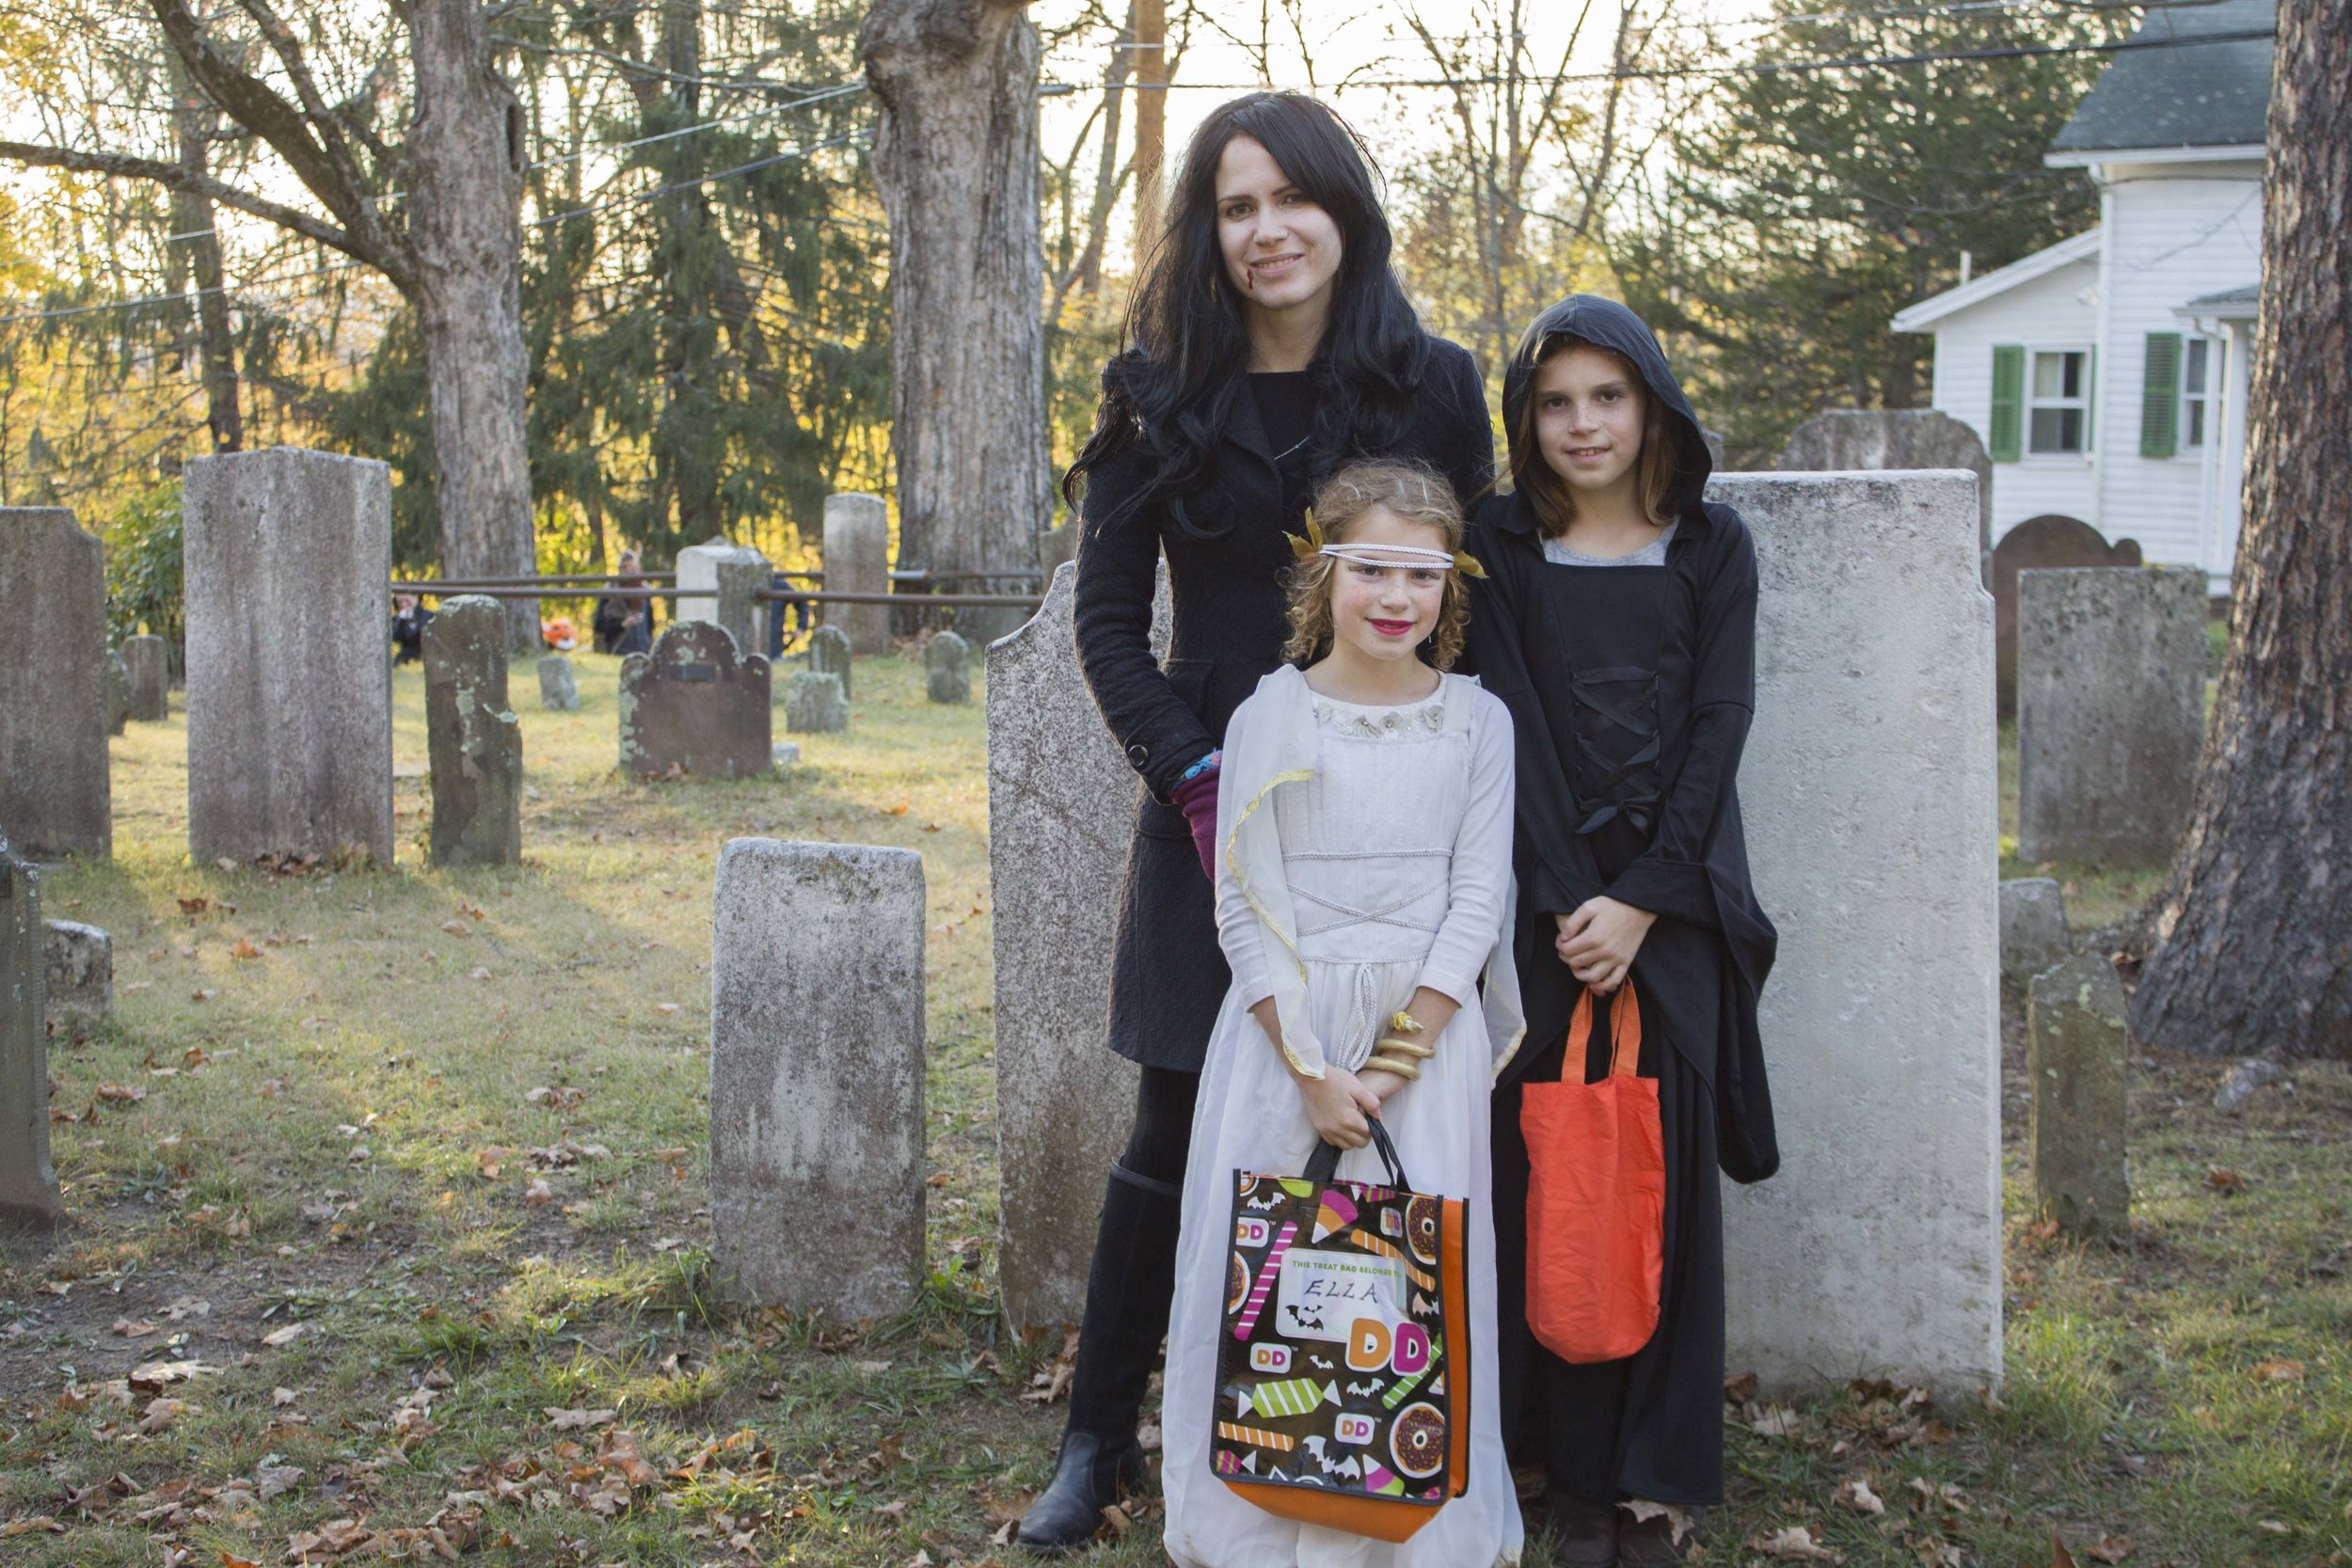 Trick or Treaters at Historic Huguenot Street, New Paltz, NY. Photo by Audrey Brand, 2016.